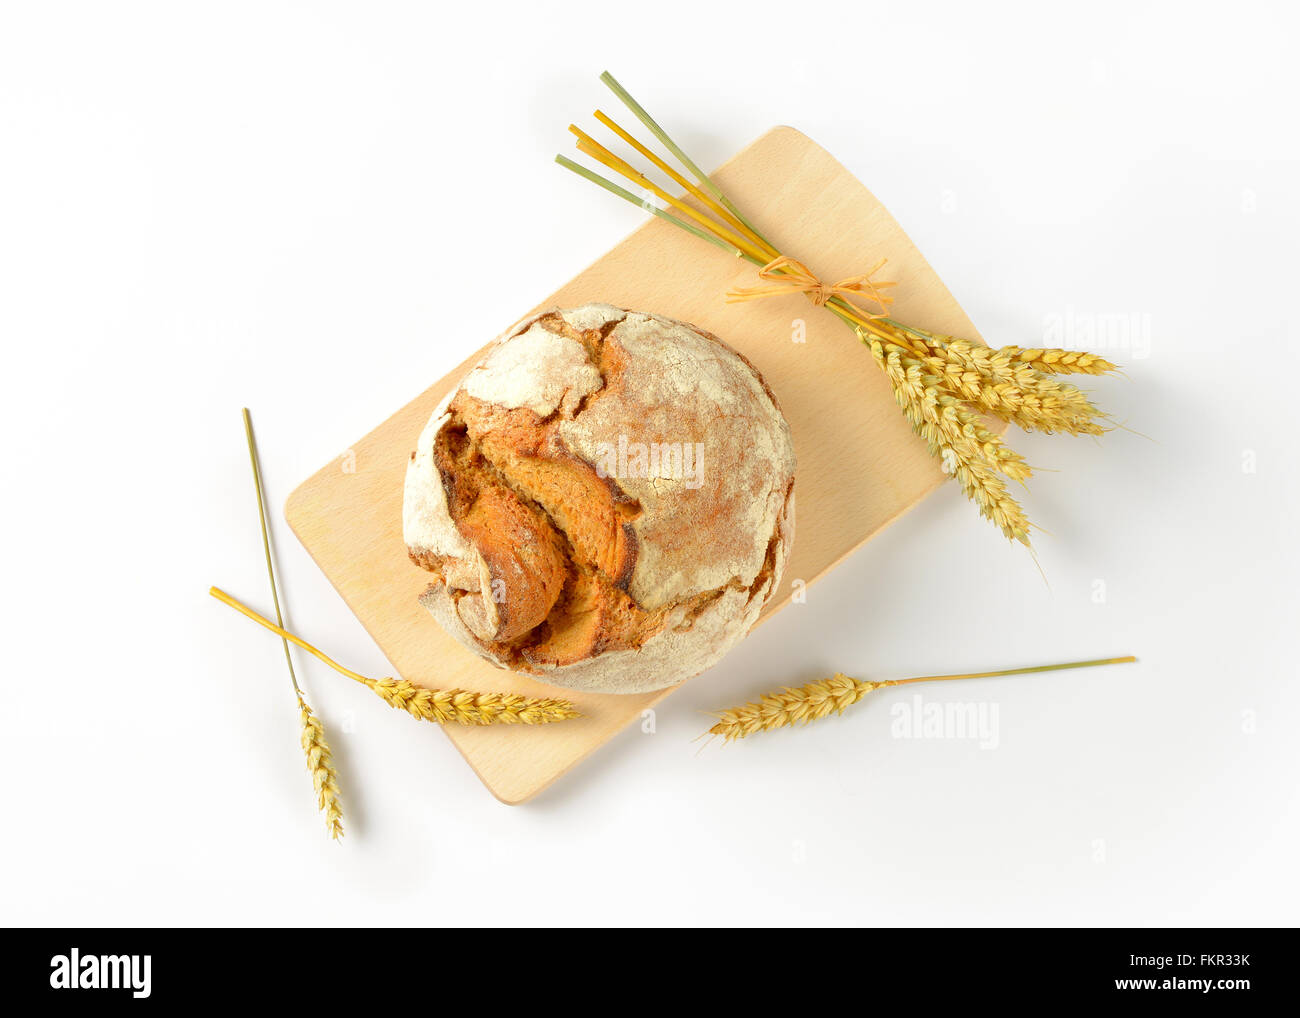 freshly baked loaf of bread and ripe ears of corn on wooden cutting board - Stock Image